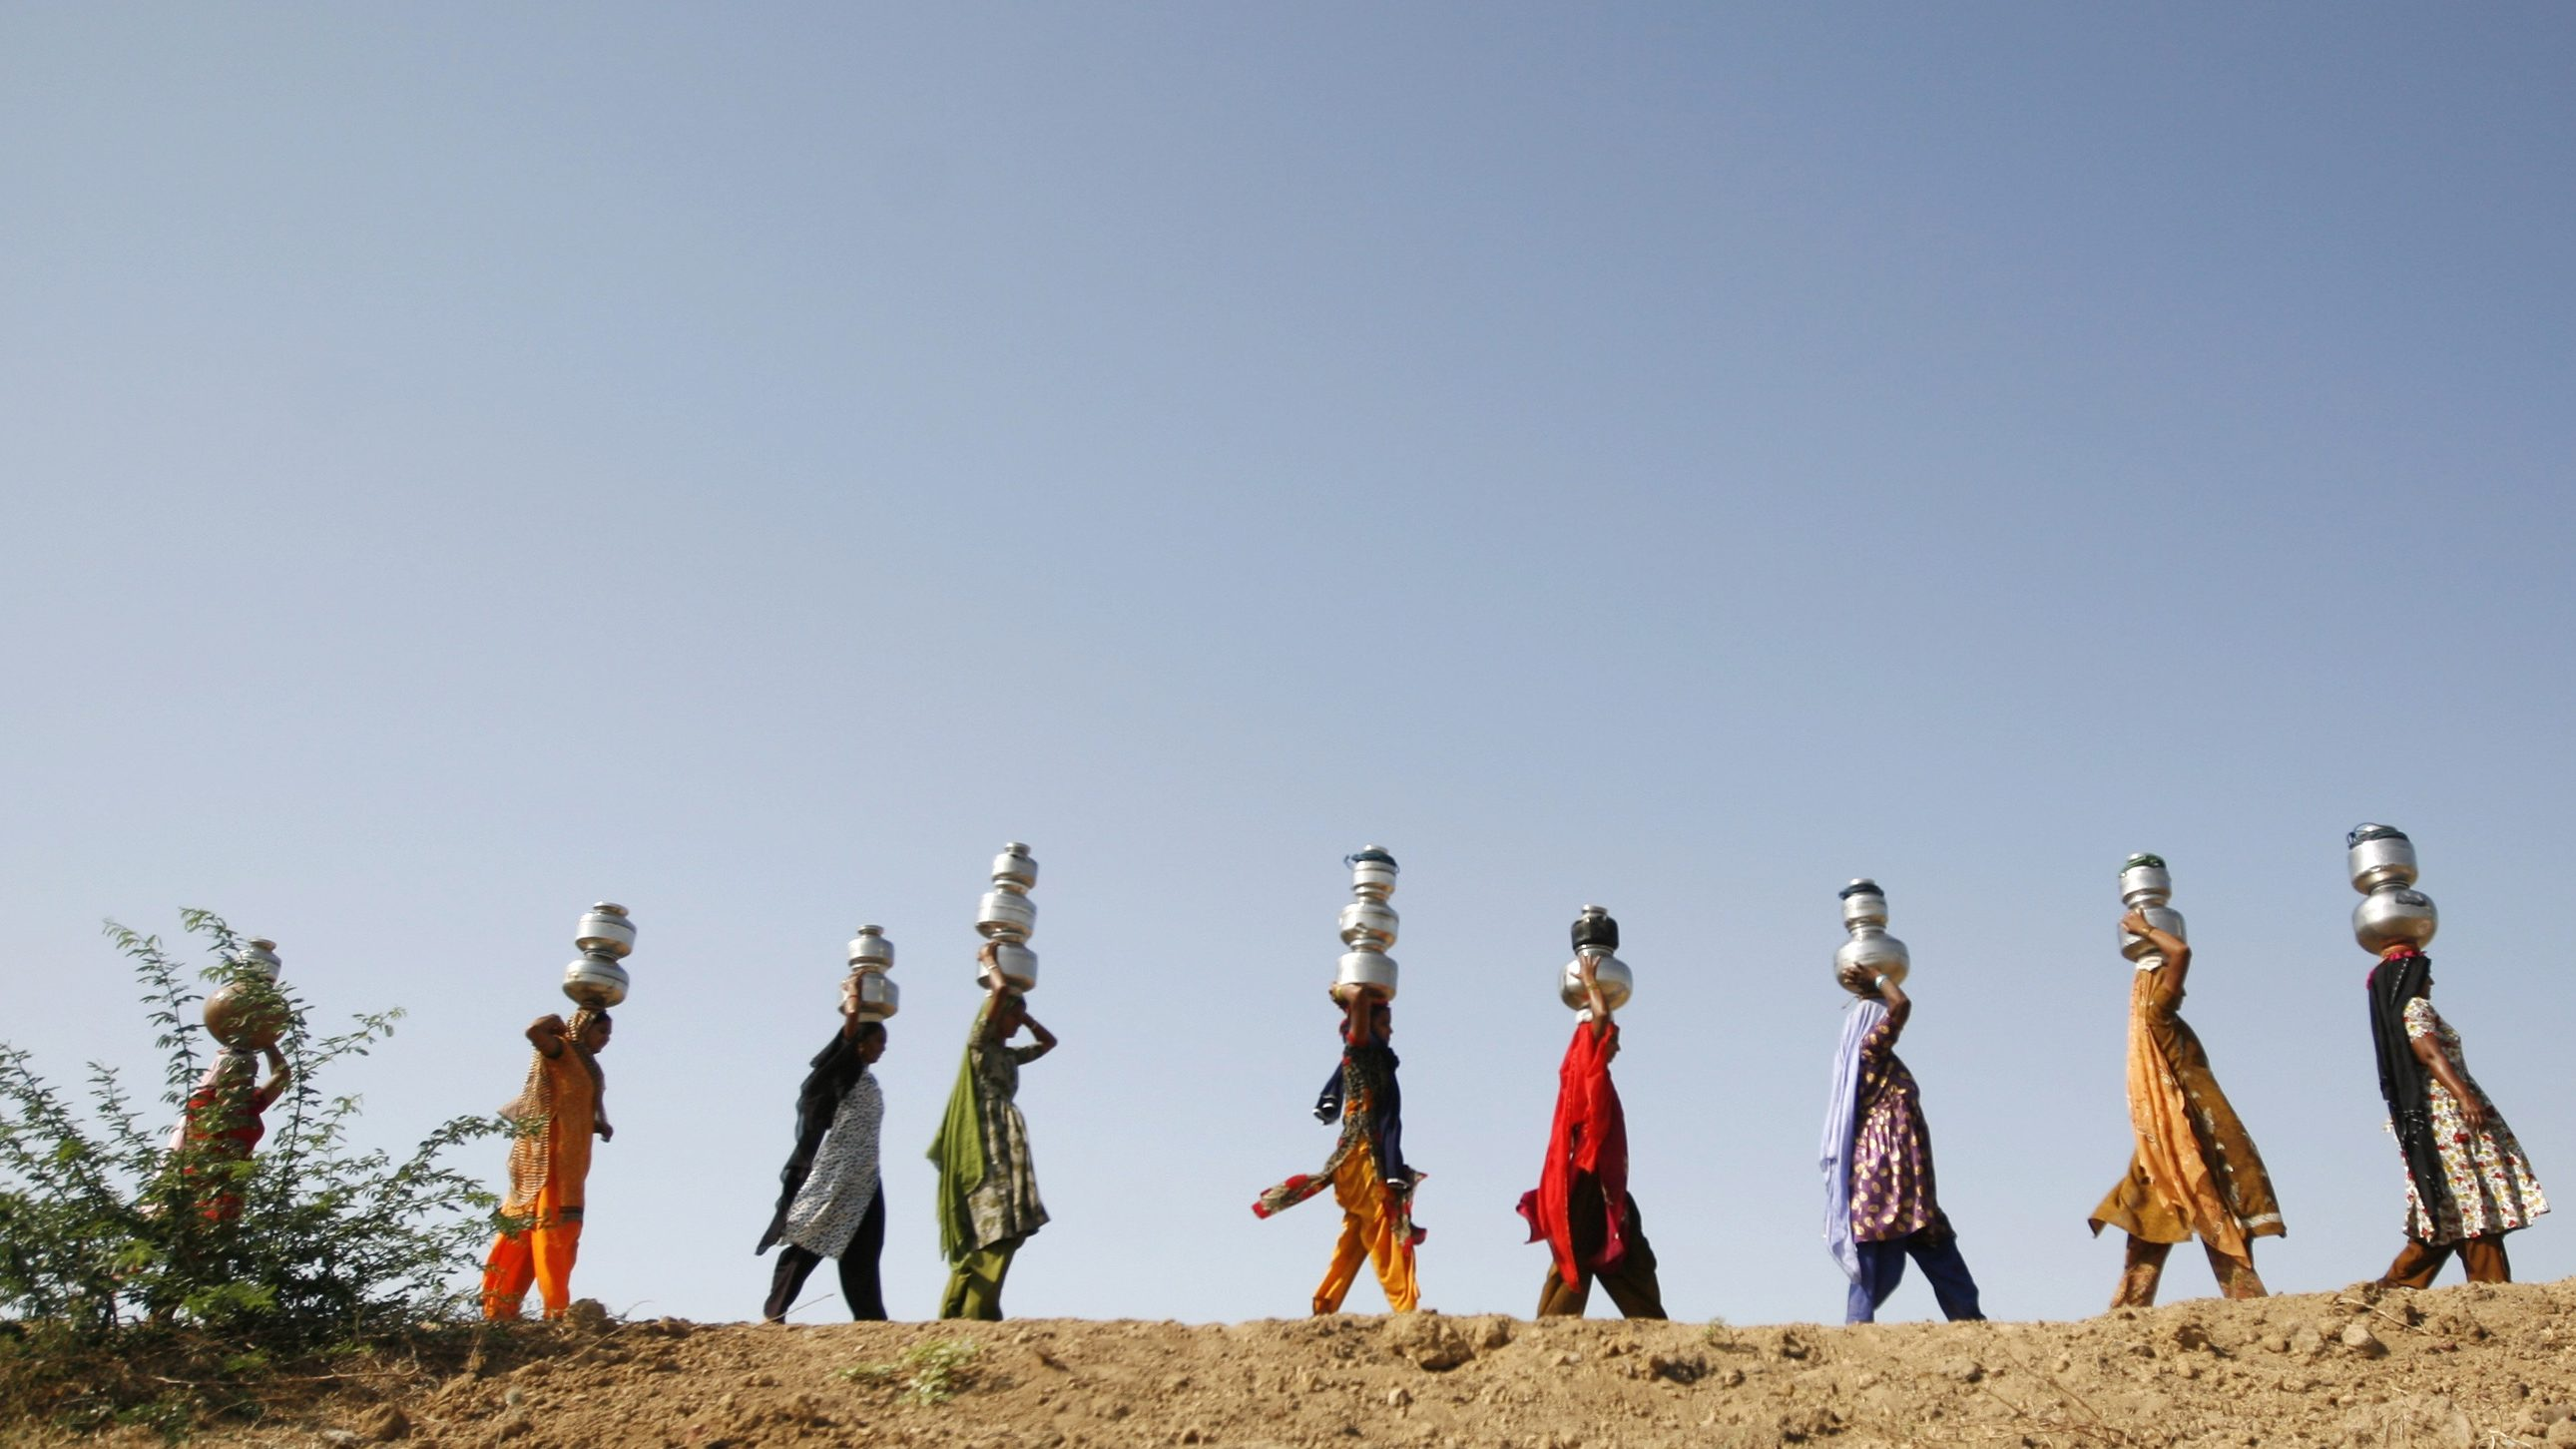 India's neglect of water conservation raises spectre of drought